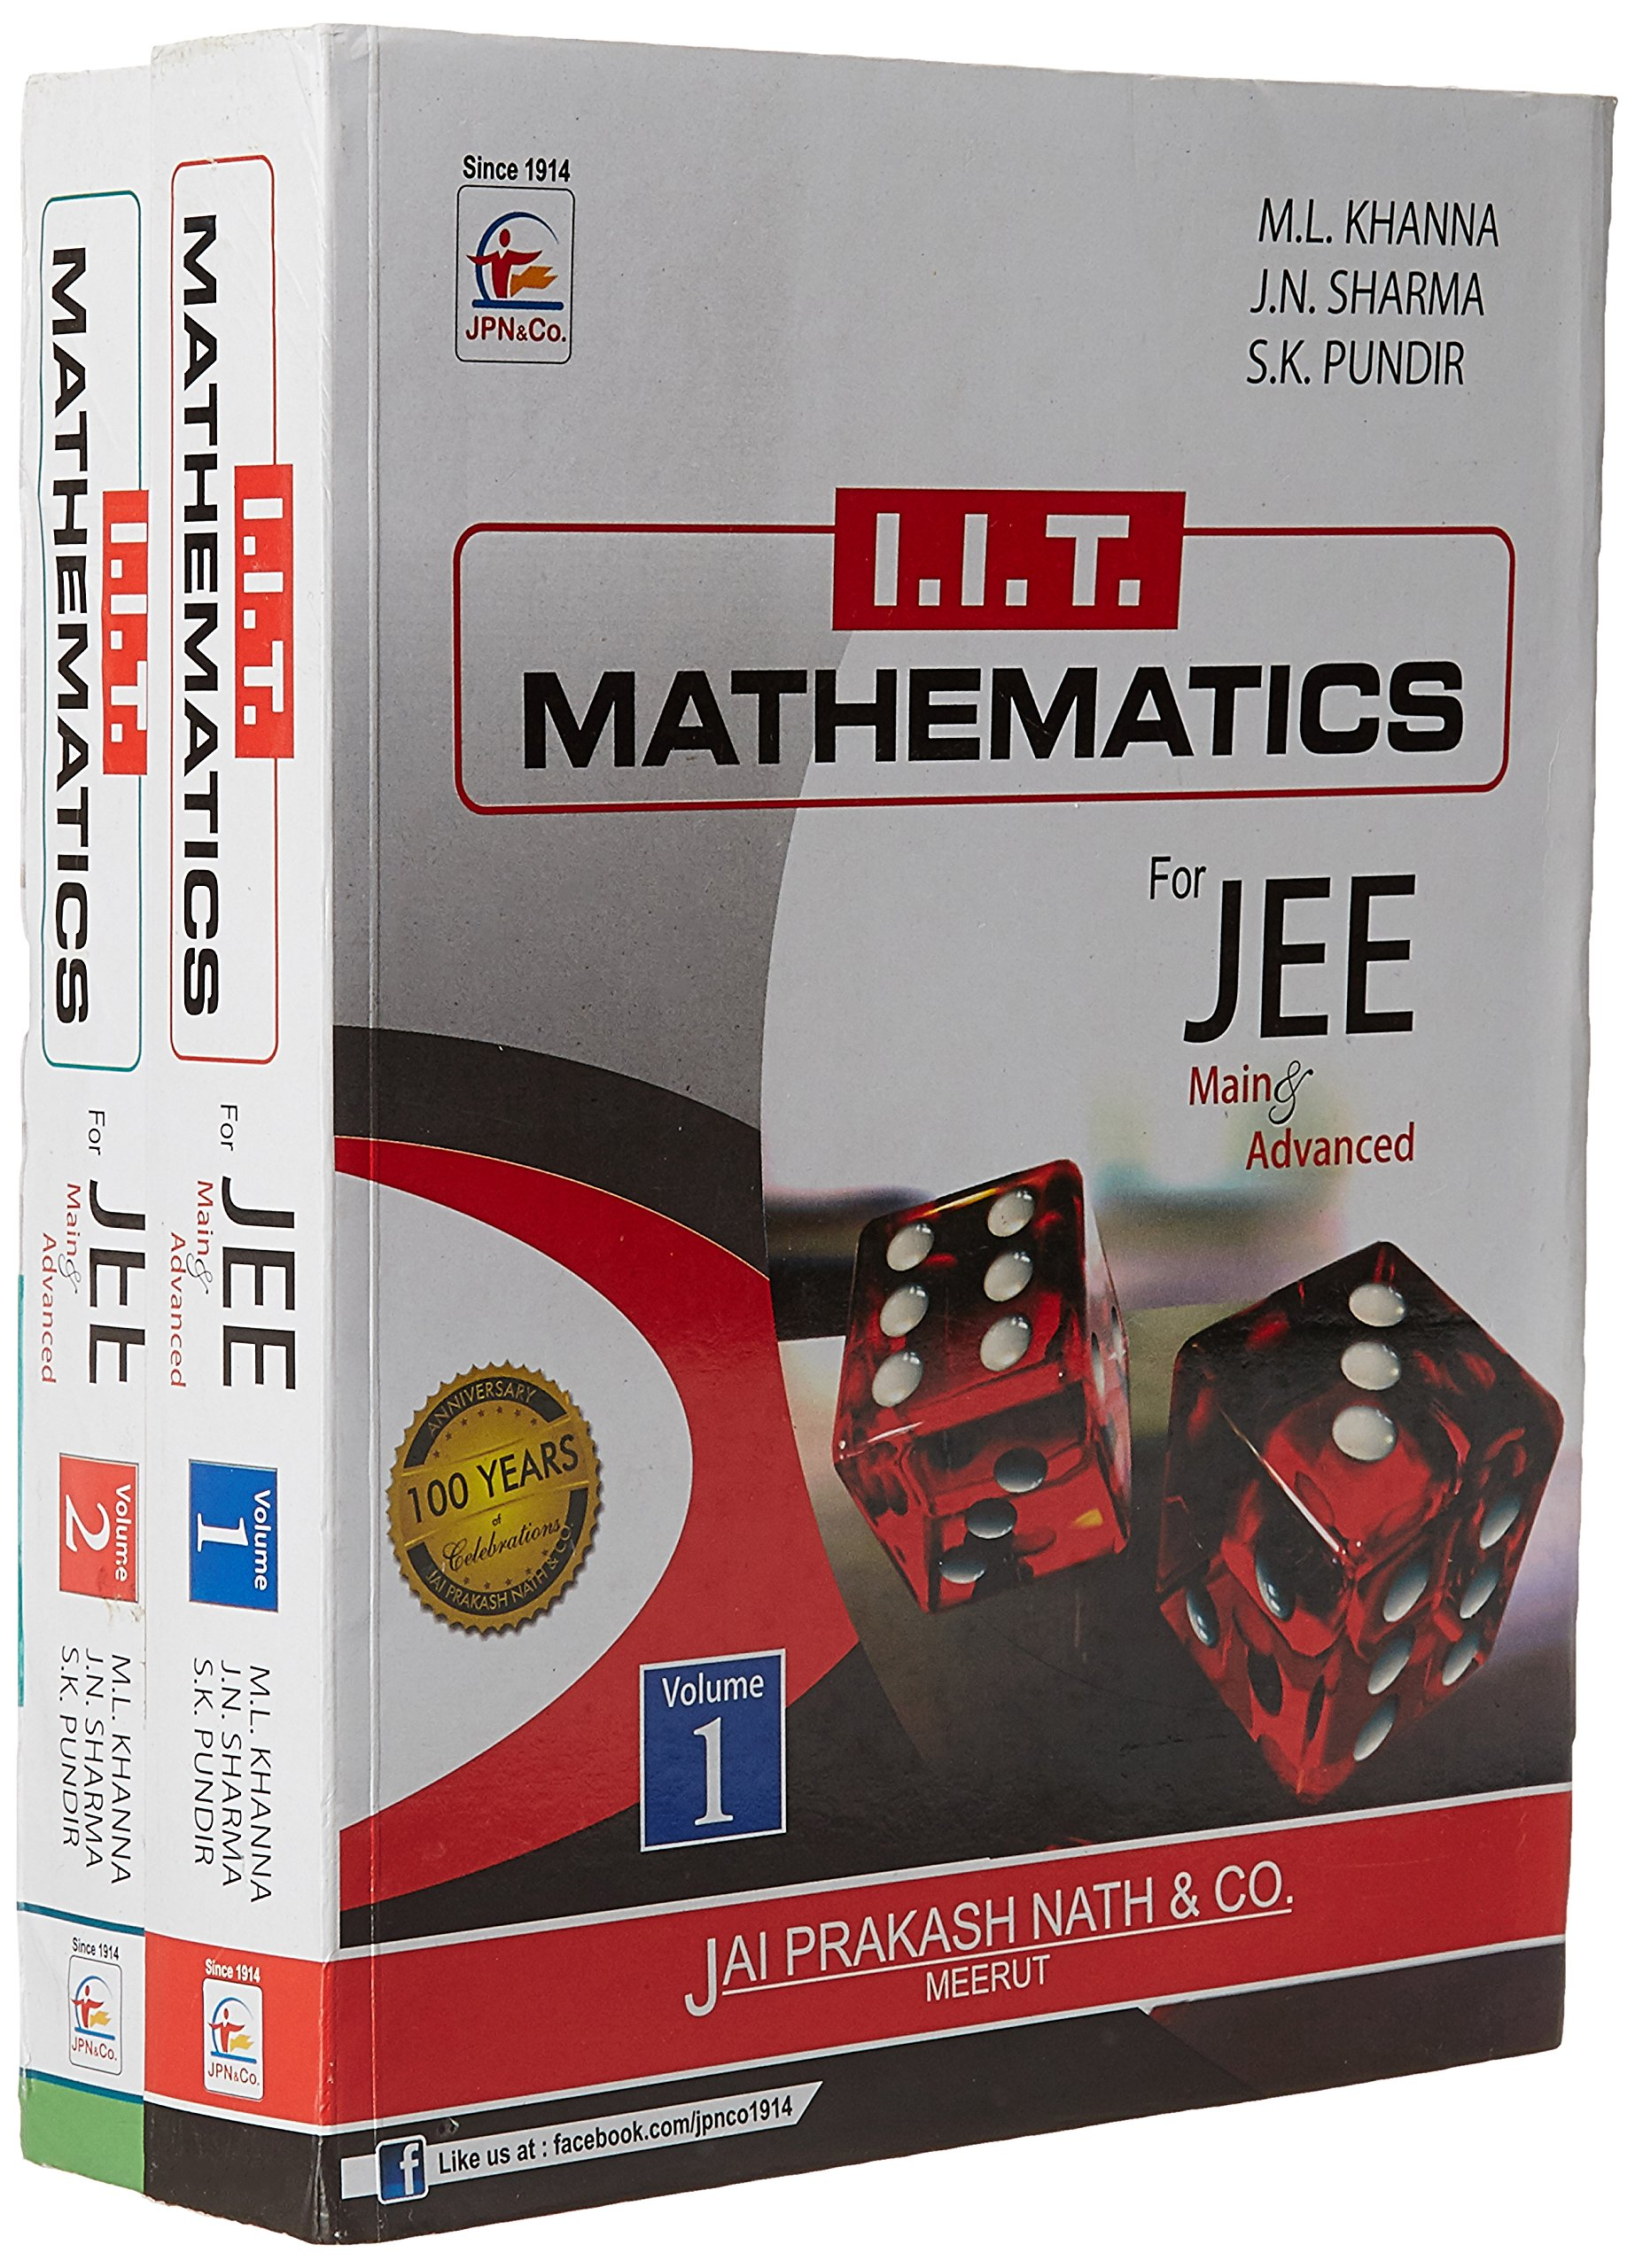 Iit mathematics for jee main advanced set of 2 volumes paperback iit mathematics for jee main advanced set of 2 volumes paperback amazon na books fandeluxe Images